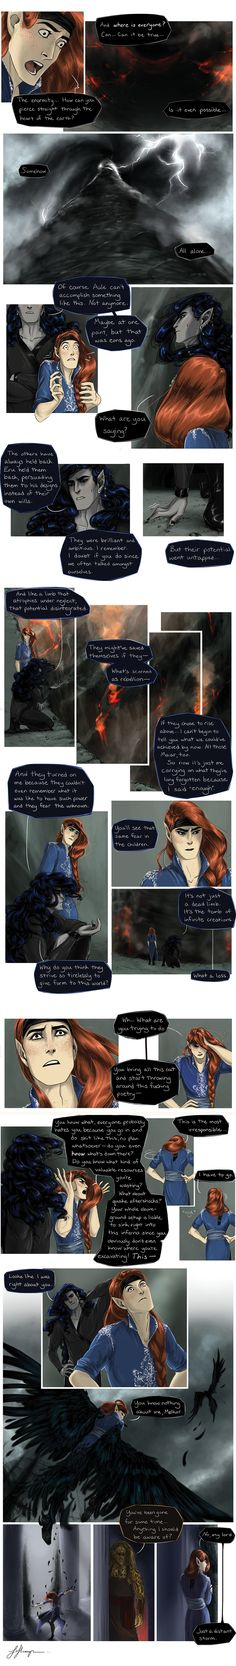 Part 10 - The Seduction of Mairon by frecklesordirt on DeviantArt